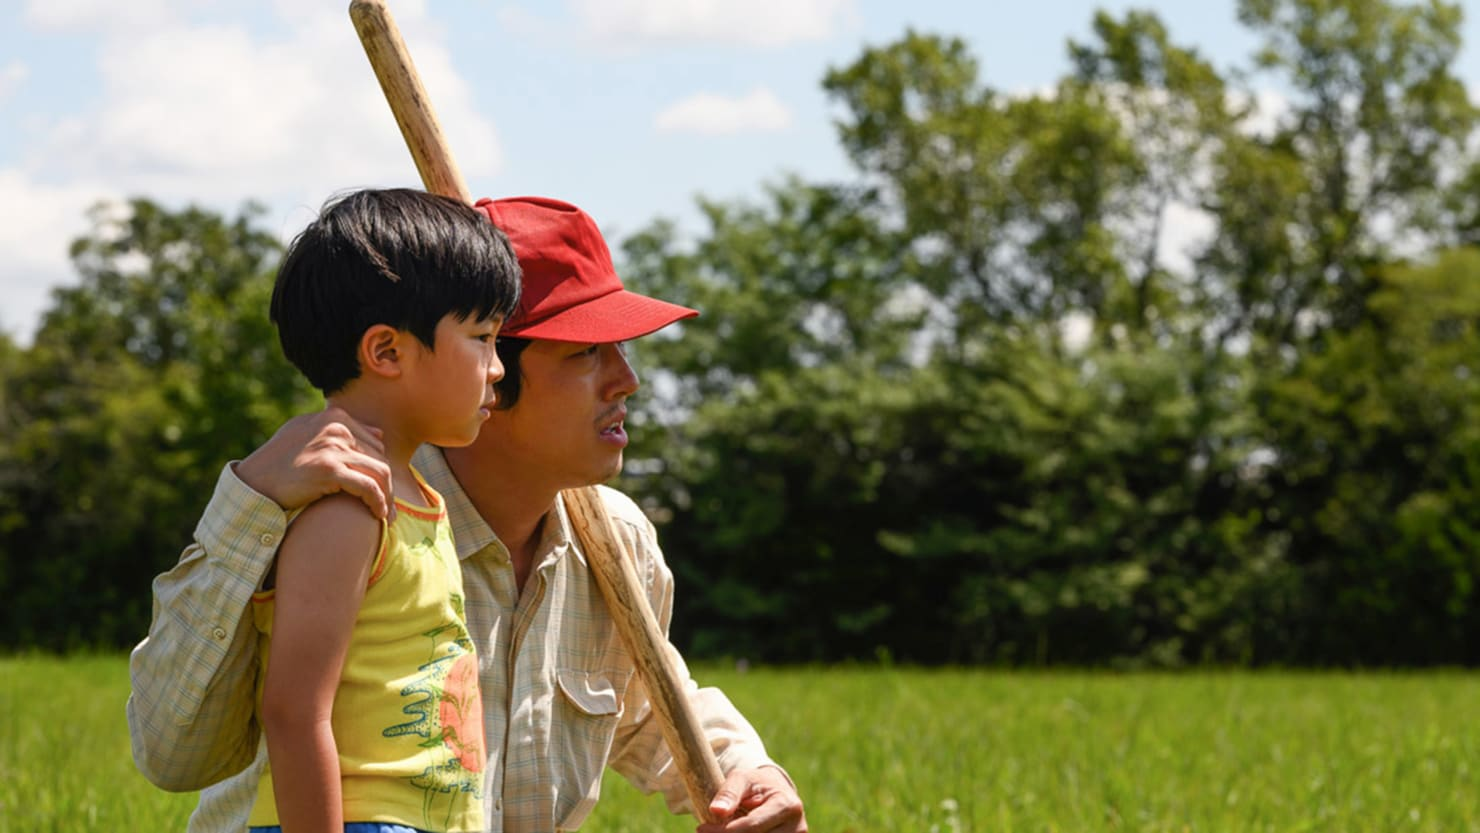 How 'Minari' Captures the Heavy Sacrifice of Asian American Immigrants - The Daily Beast